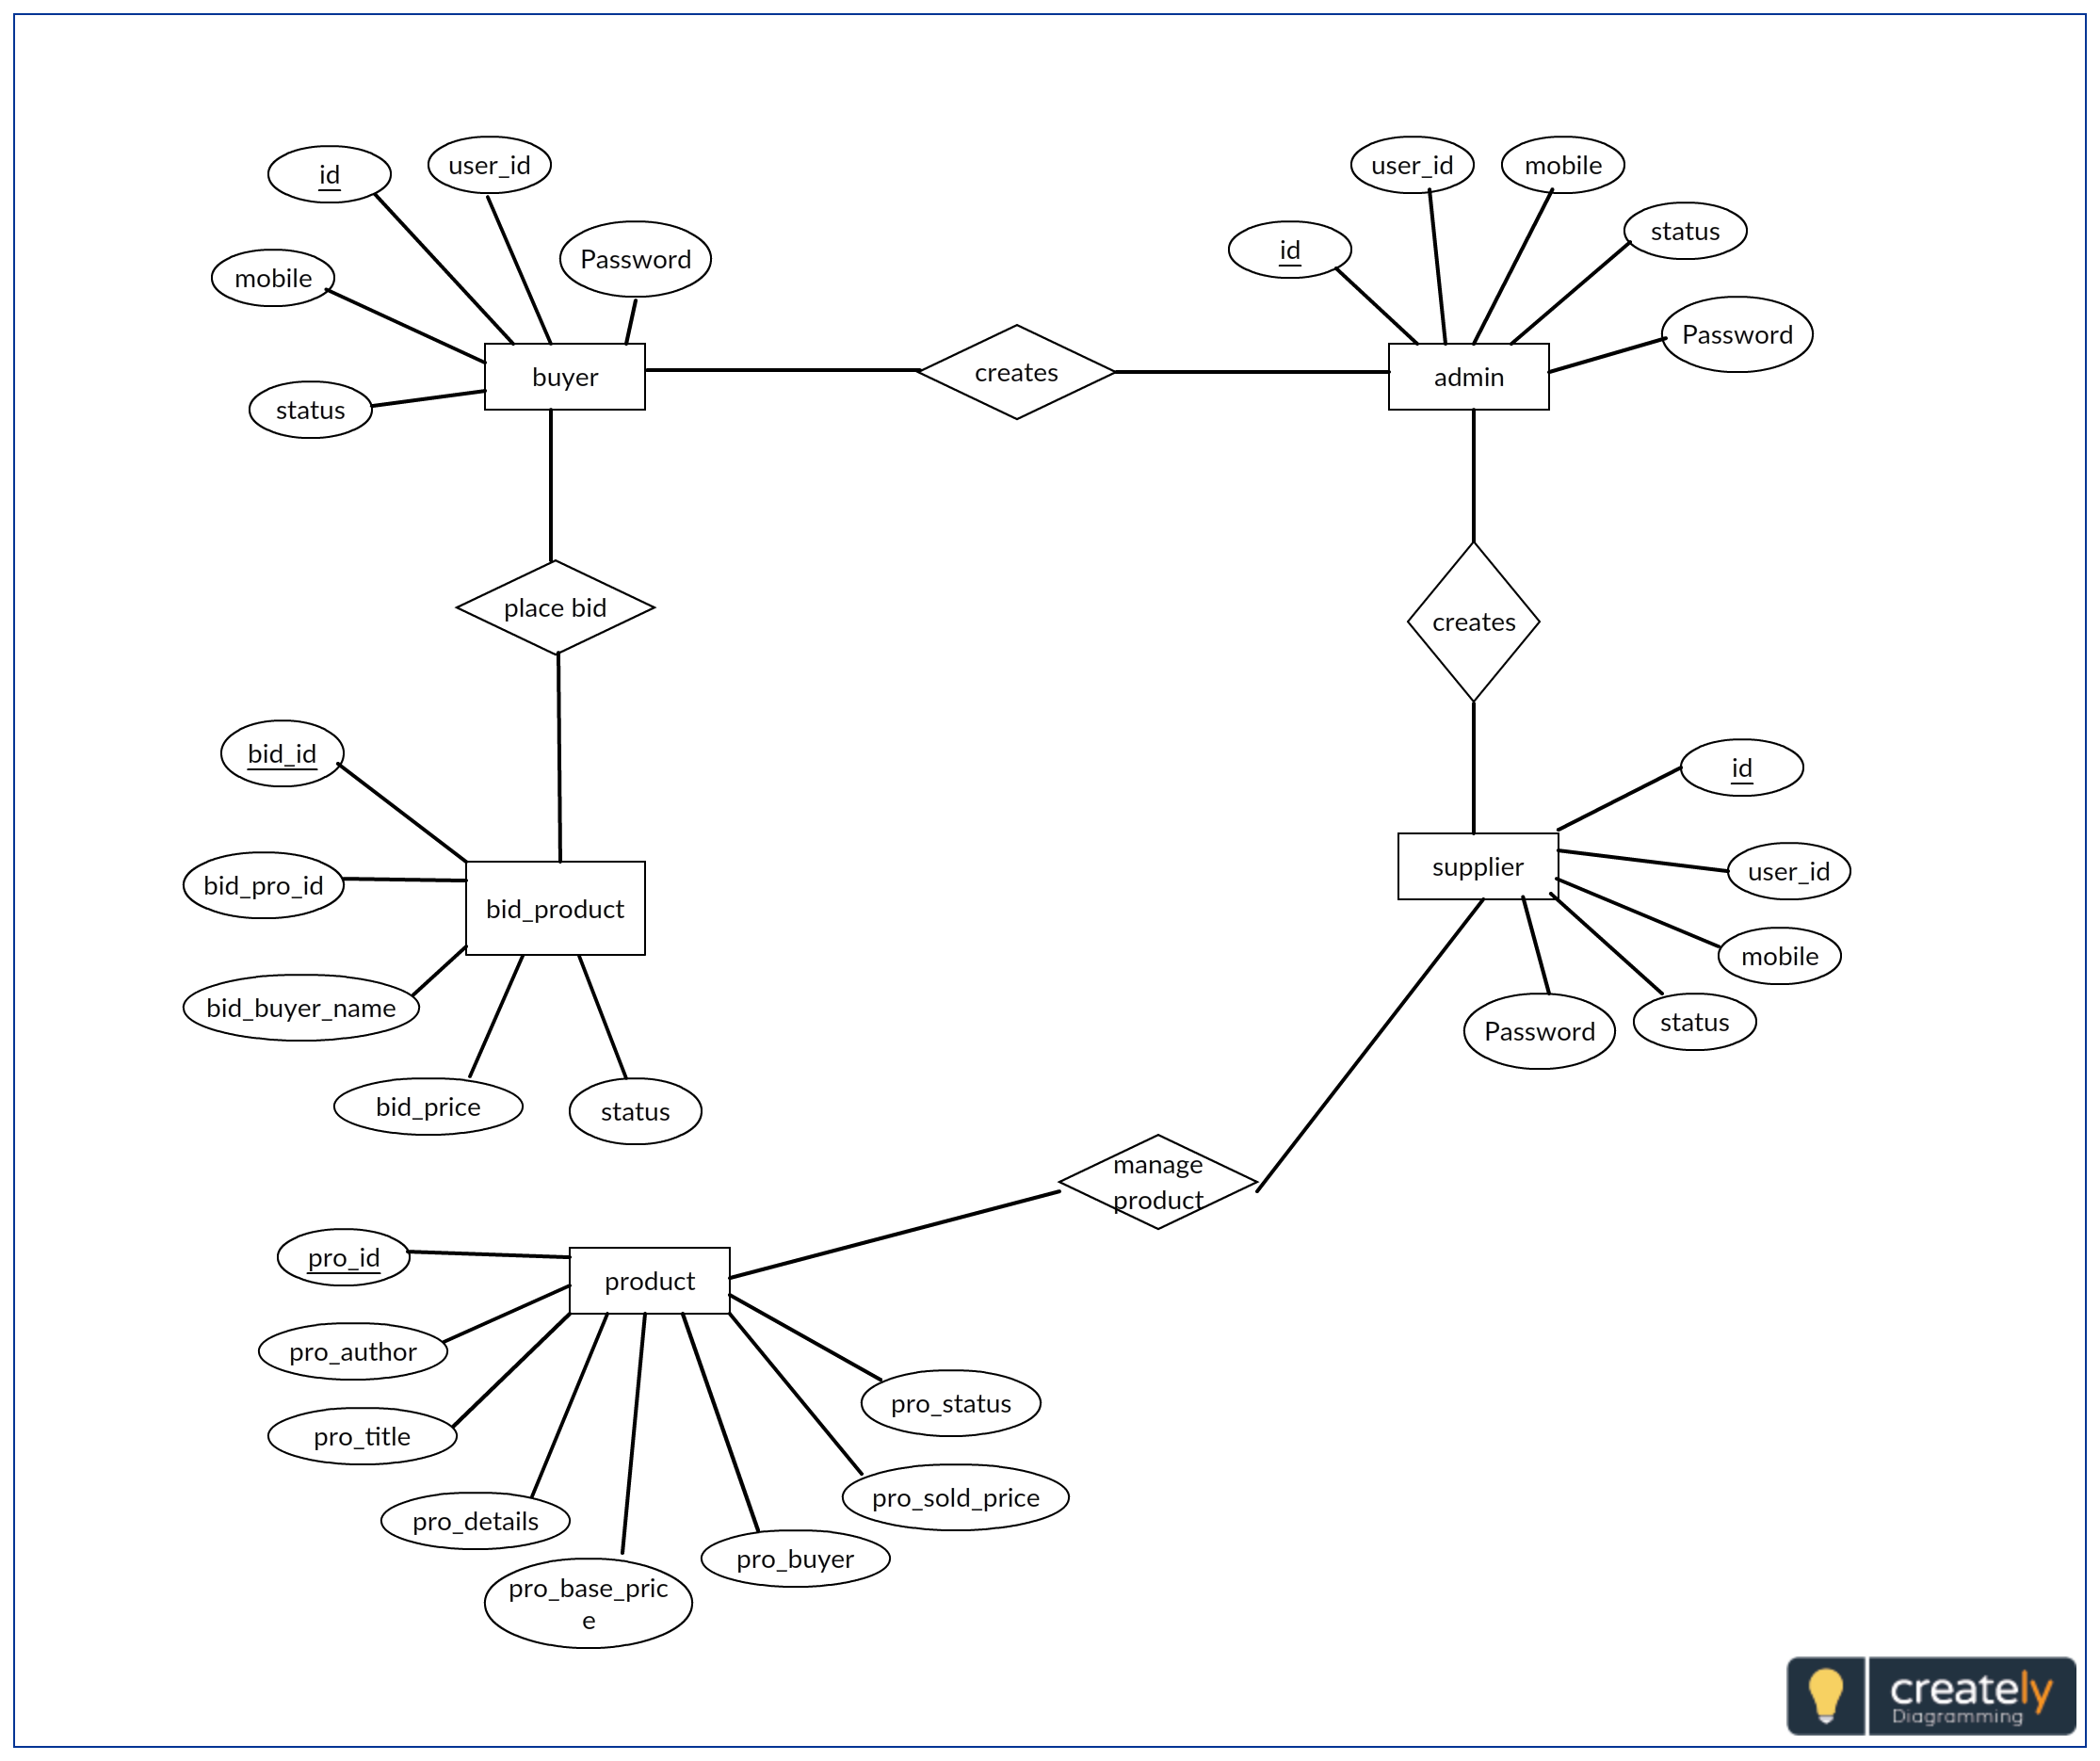 Entity Relationship Diagram Example For Auctioning System  Click On The Image To Edit Online And